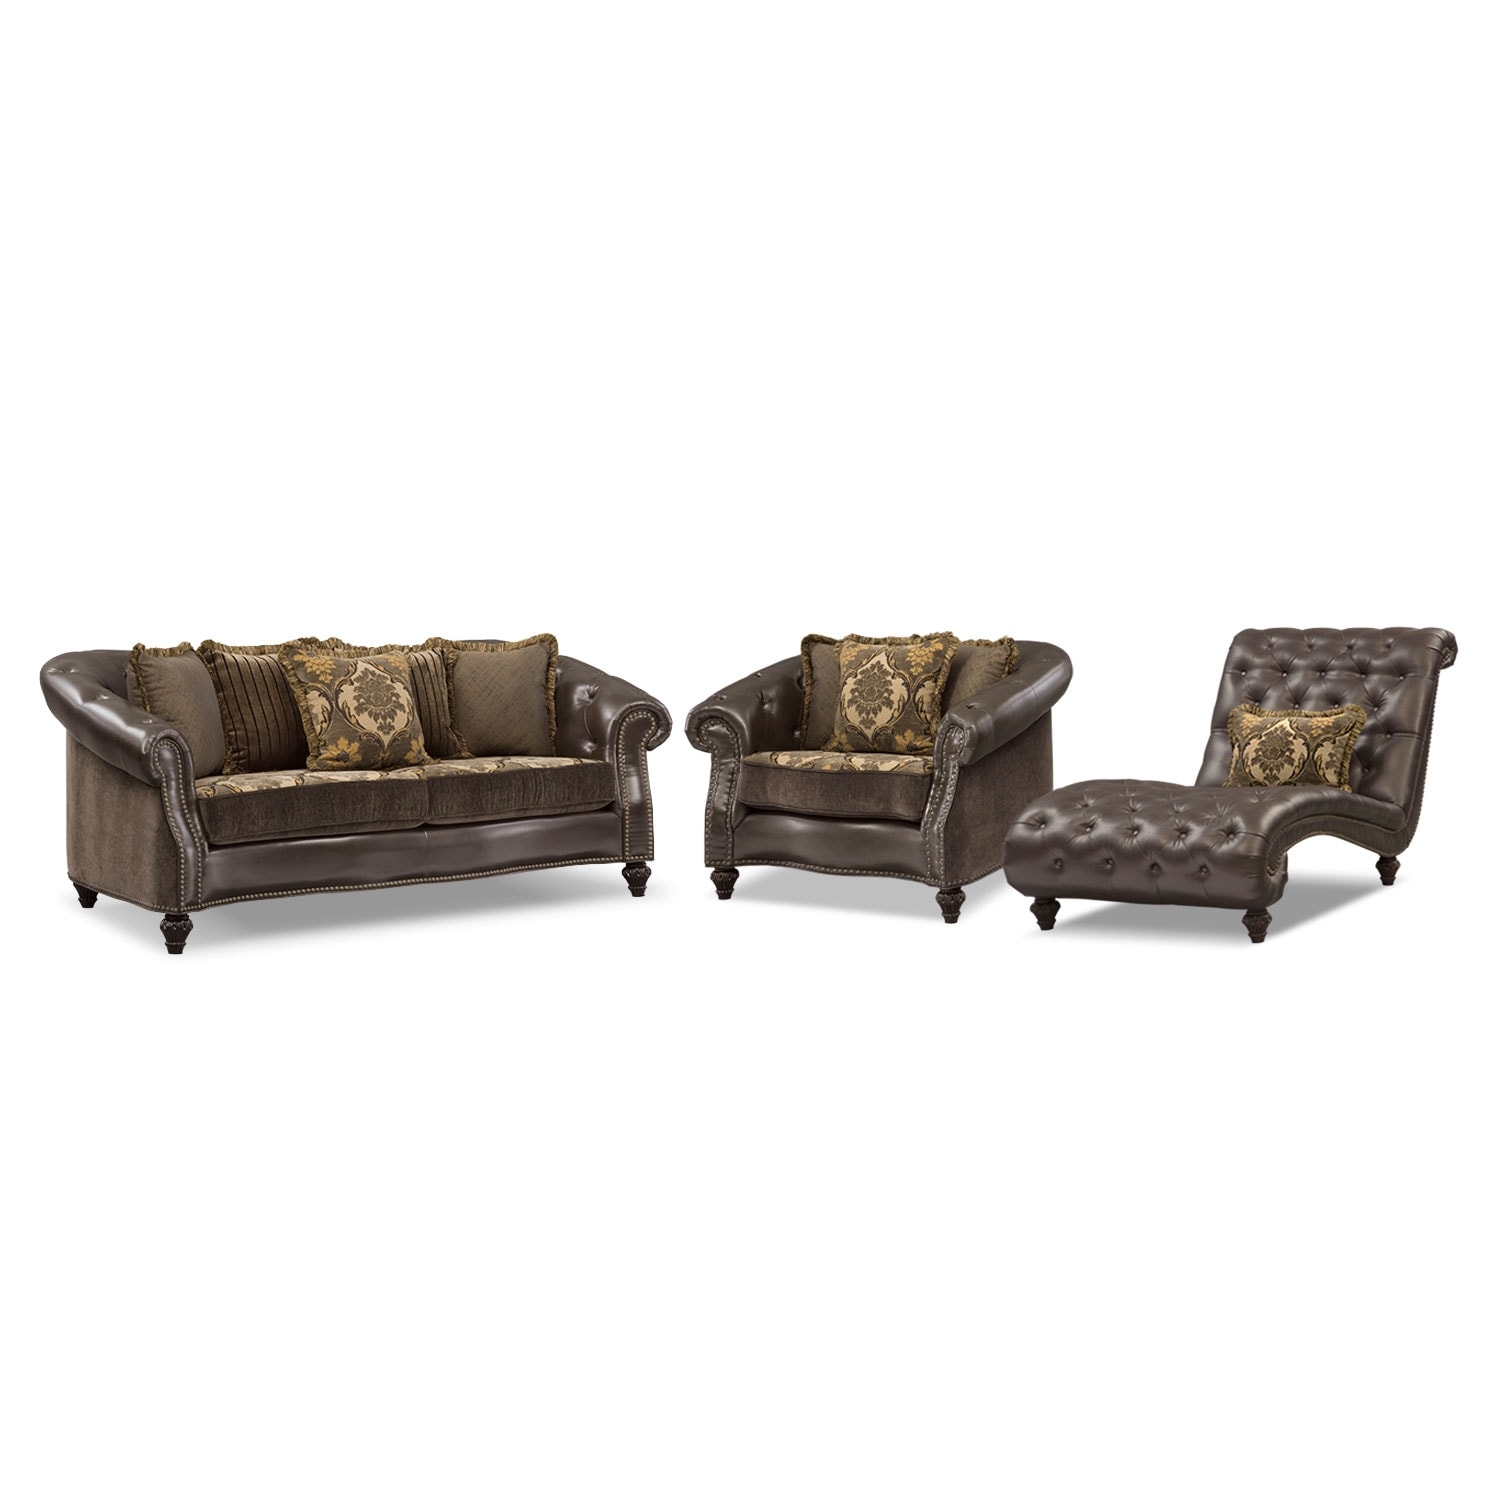 Living Room Furniture - Nicholas 3 Pc. Living Room w/Chair and Chaise